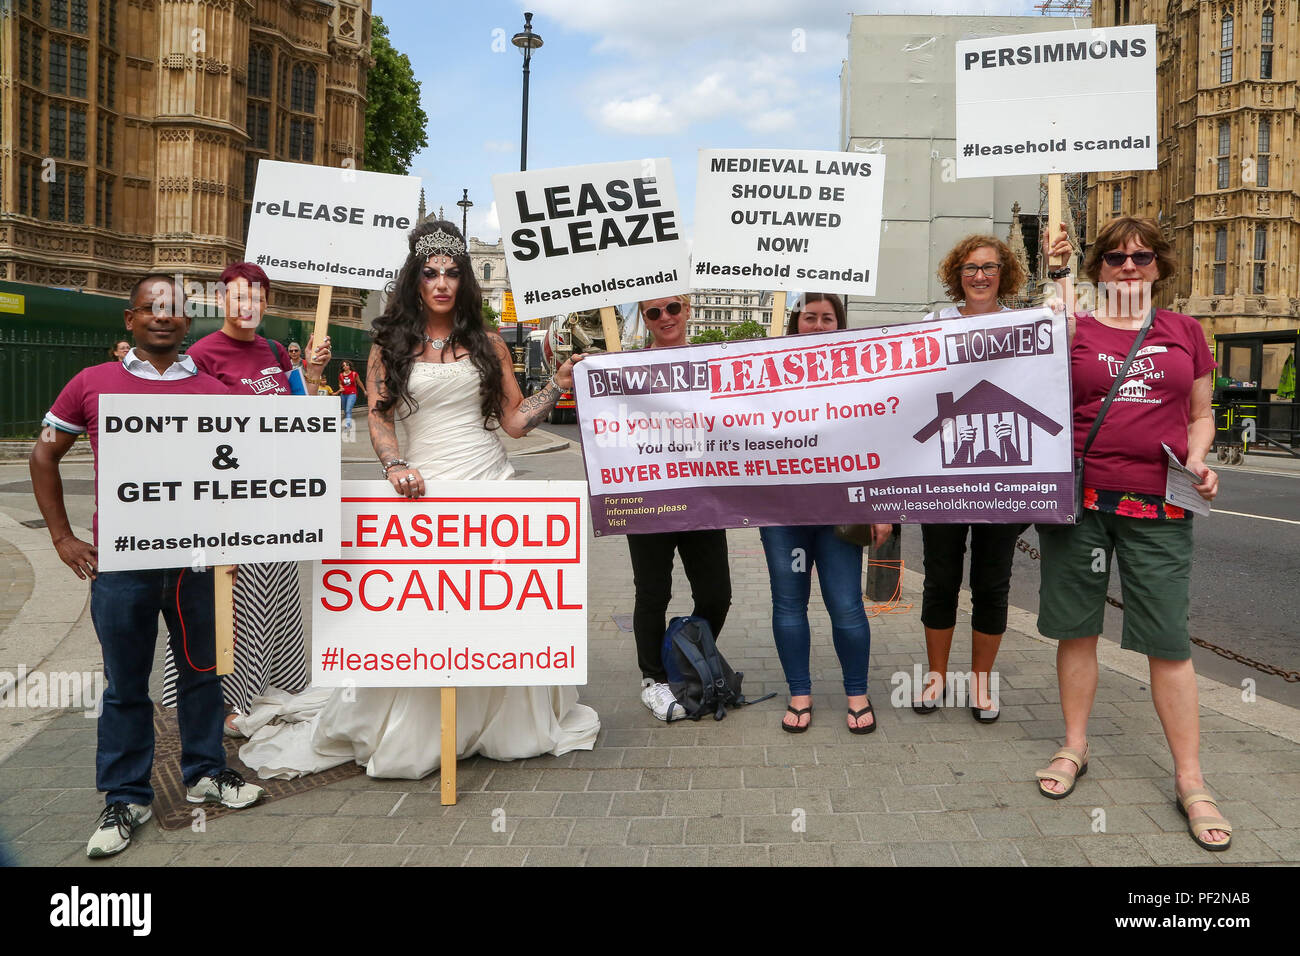 Members of the National Leasehold Campaign (NLC) stage a protest opposite the Parliament over the scandal of property leaseholder rights which currently allow landlords to buy and sell property freeholds with little or no control over service charges or ground rent.  Featuring: Atmosphere, View Where: London, United Kingdom When: 18 Jul 2018 Credit: Dinendra Haria/WENN - Stock Image